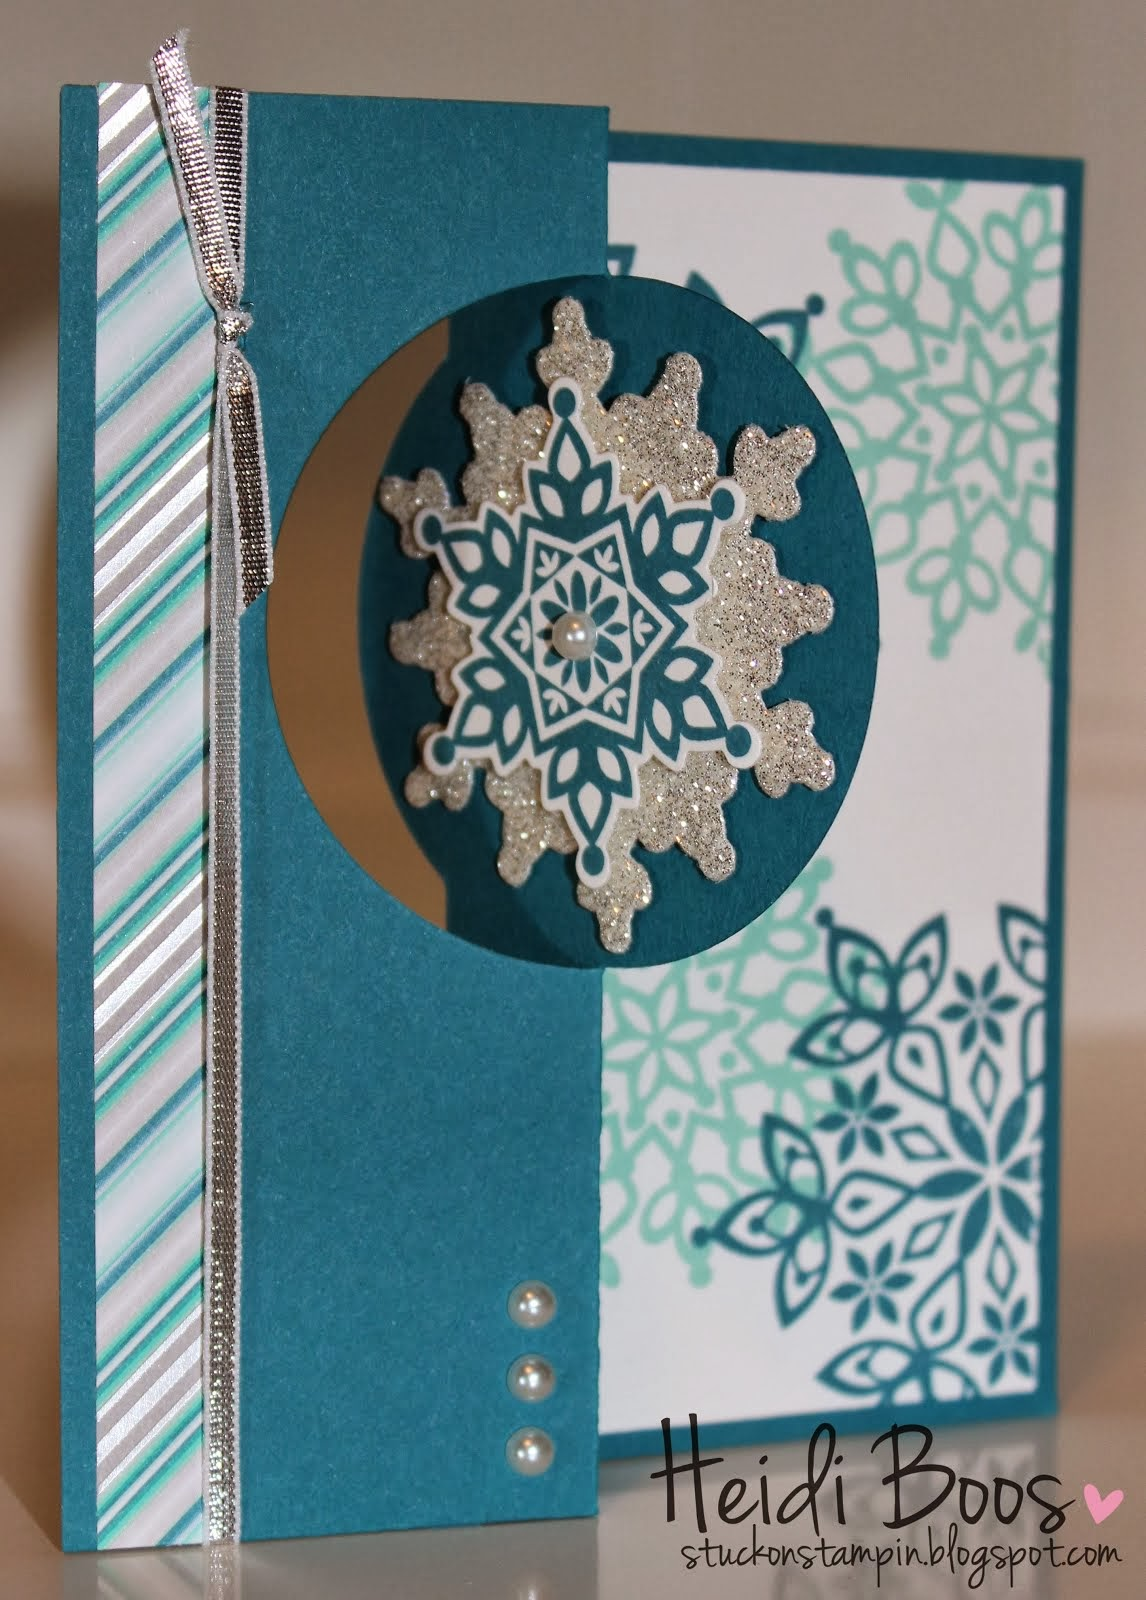 Stuck on Stampin' - My Stampin' Up! Blog